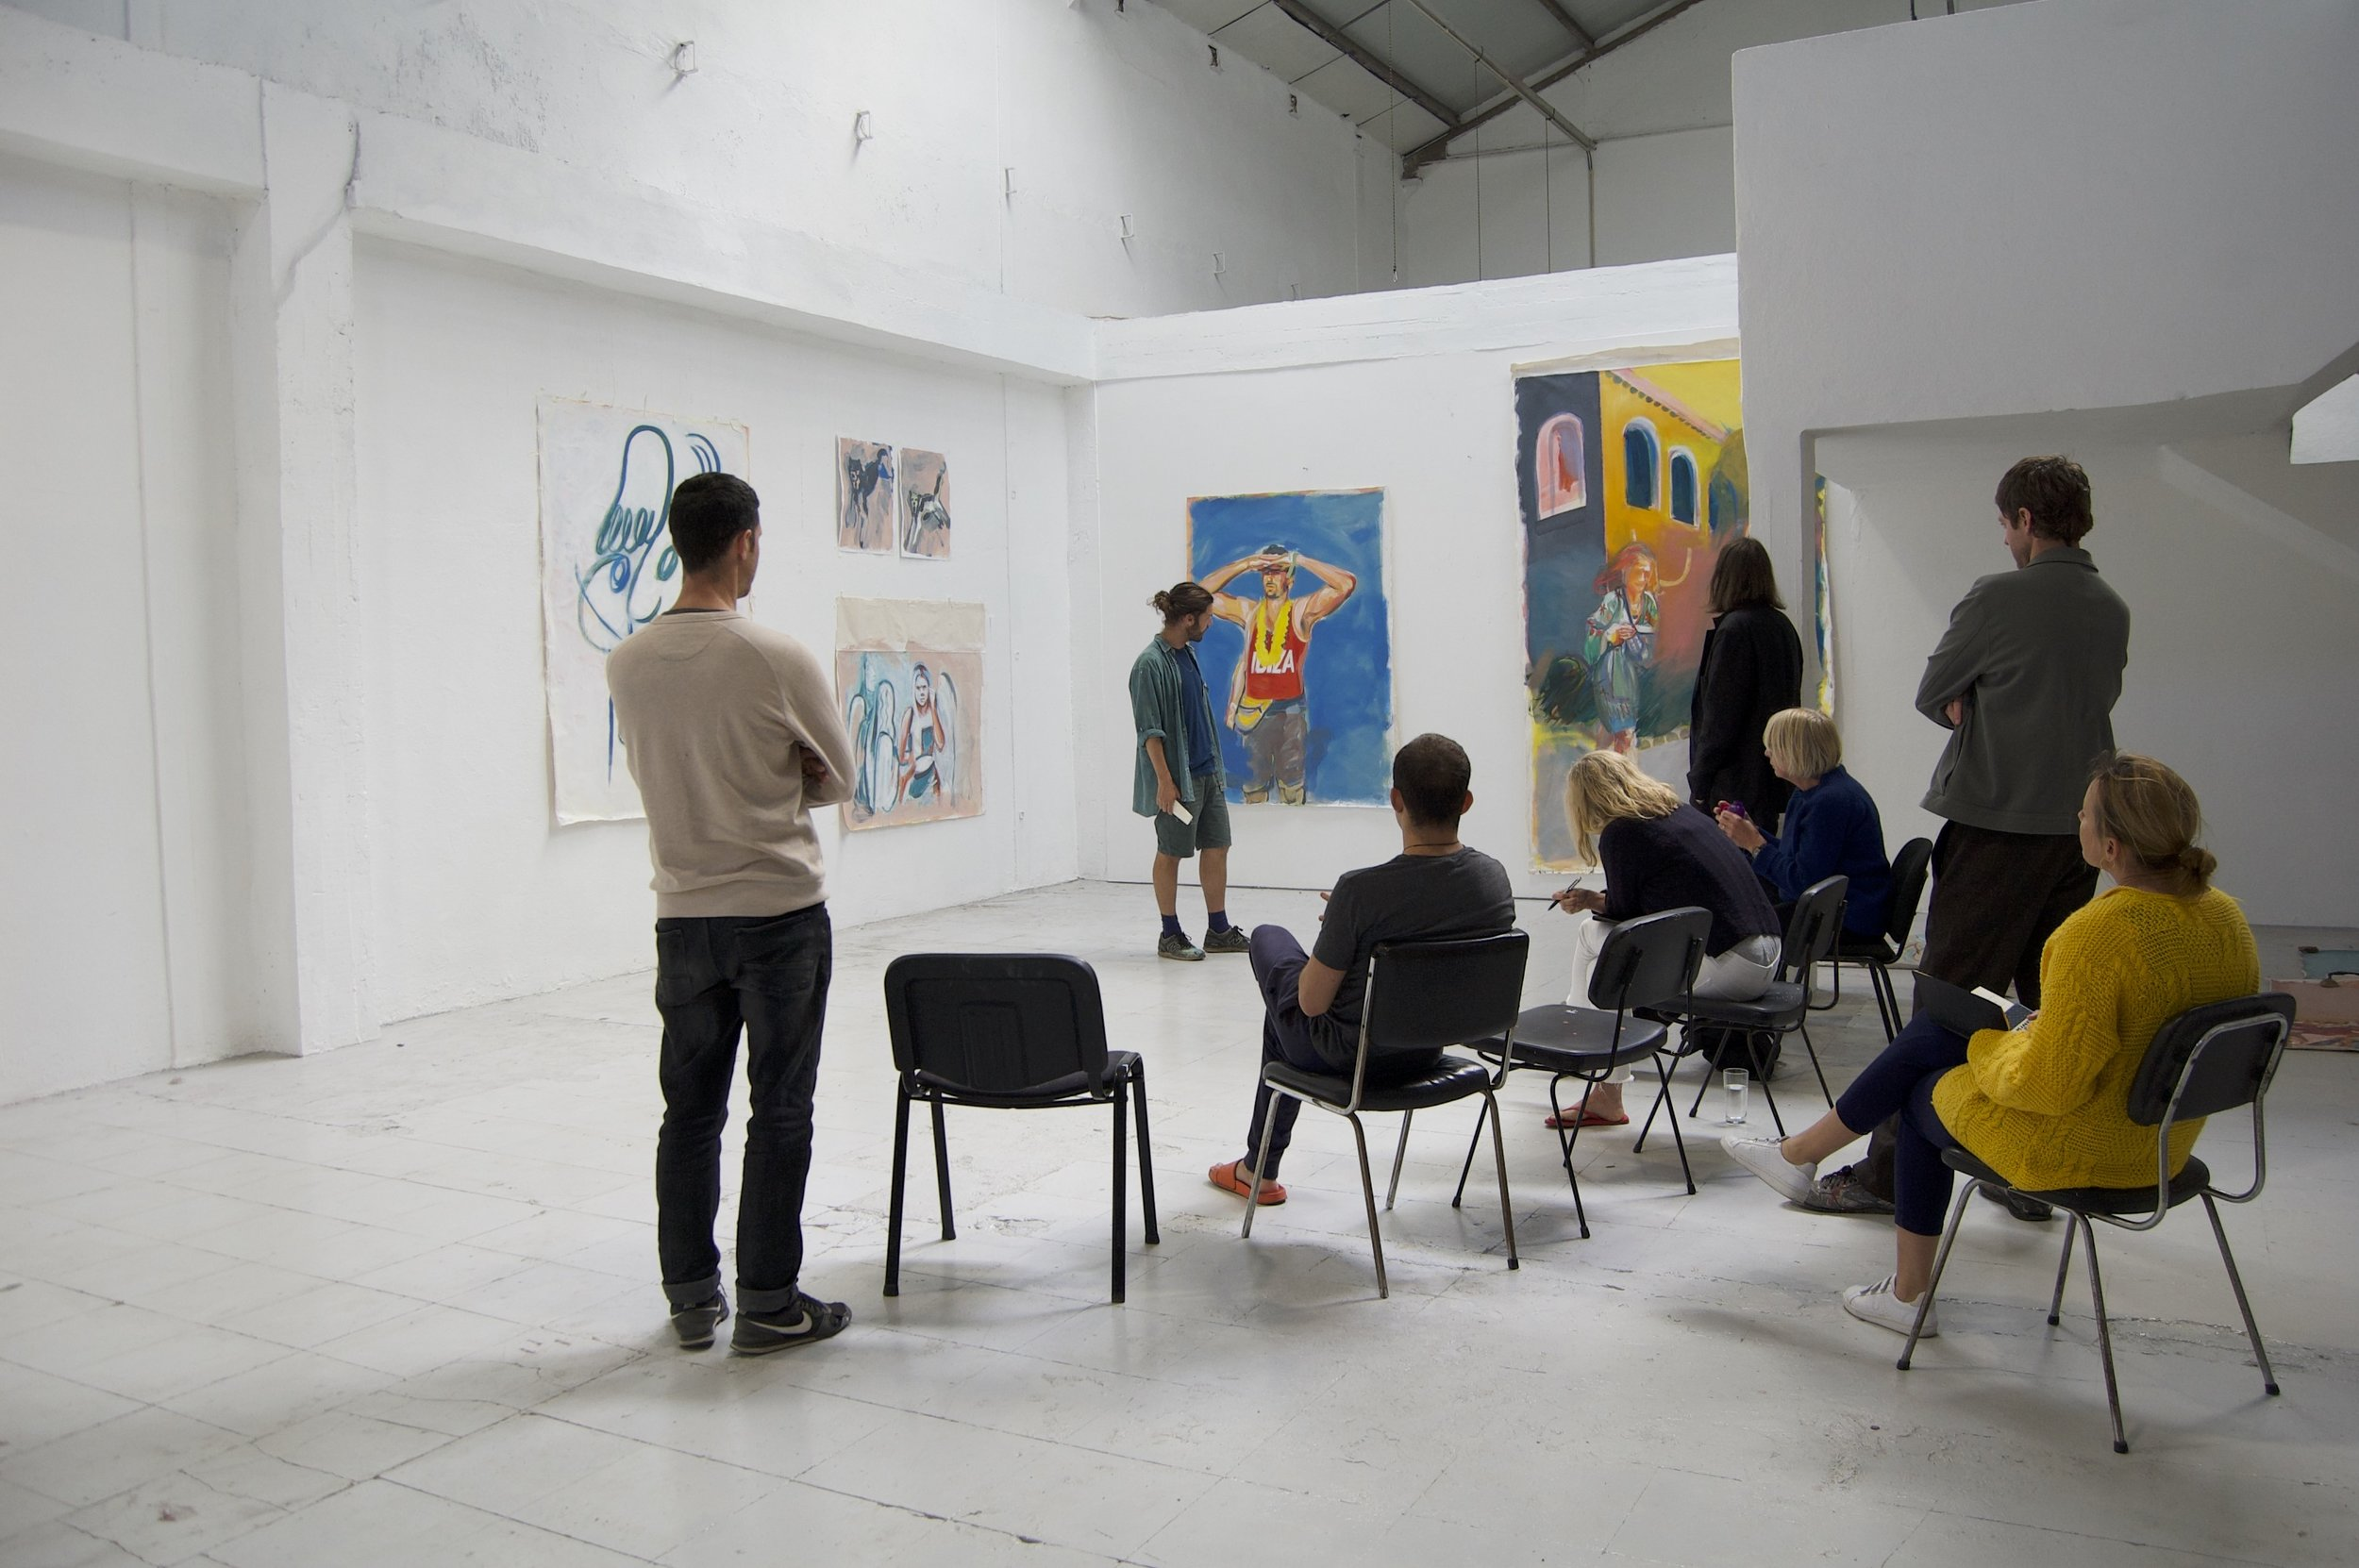 Critique at PADA in Lisbon, Portugal